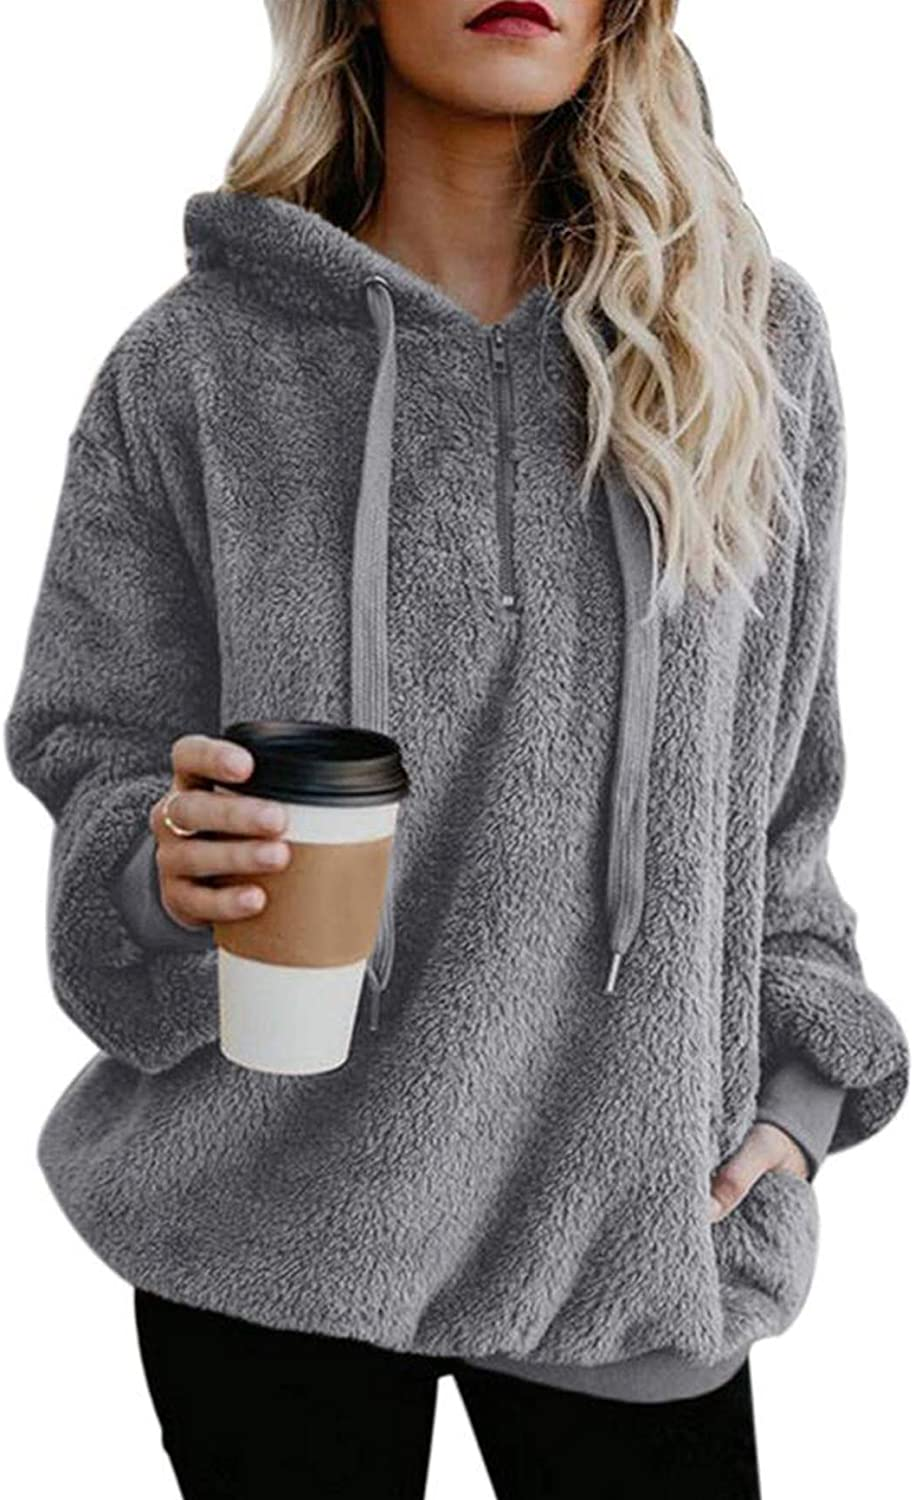 American Trends Oversized Sweatshirts for Women Athletic Womens Sherpa Hoodie Fluffy Women's Hoodies Pullover with Pockets at  Women's Clothing store